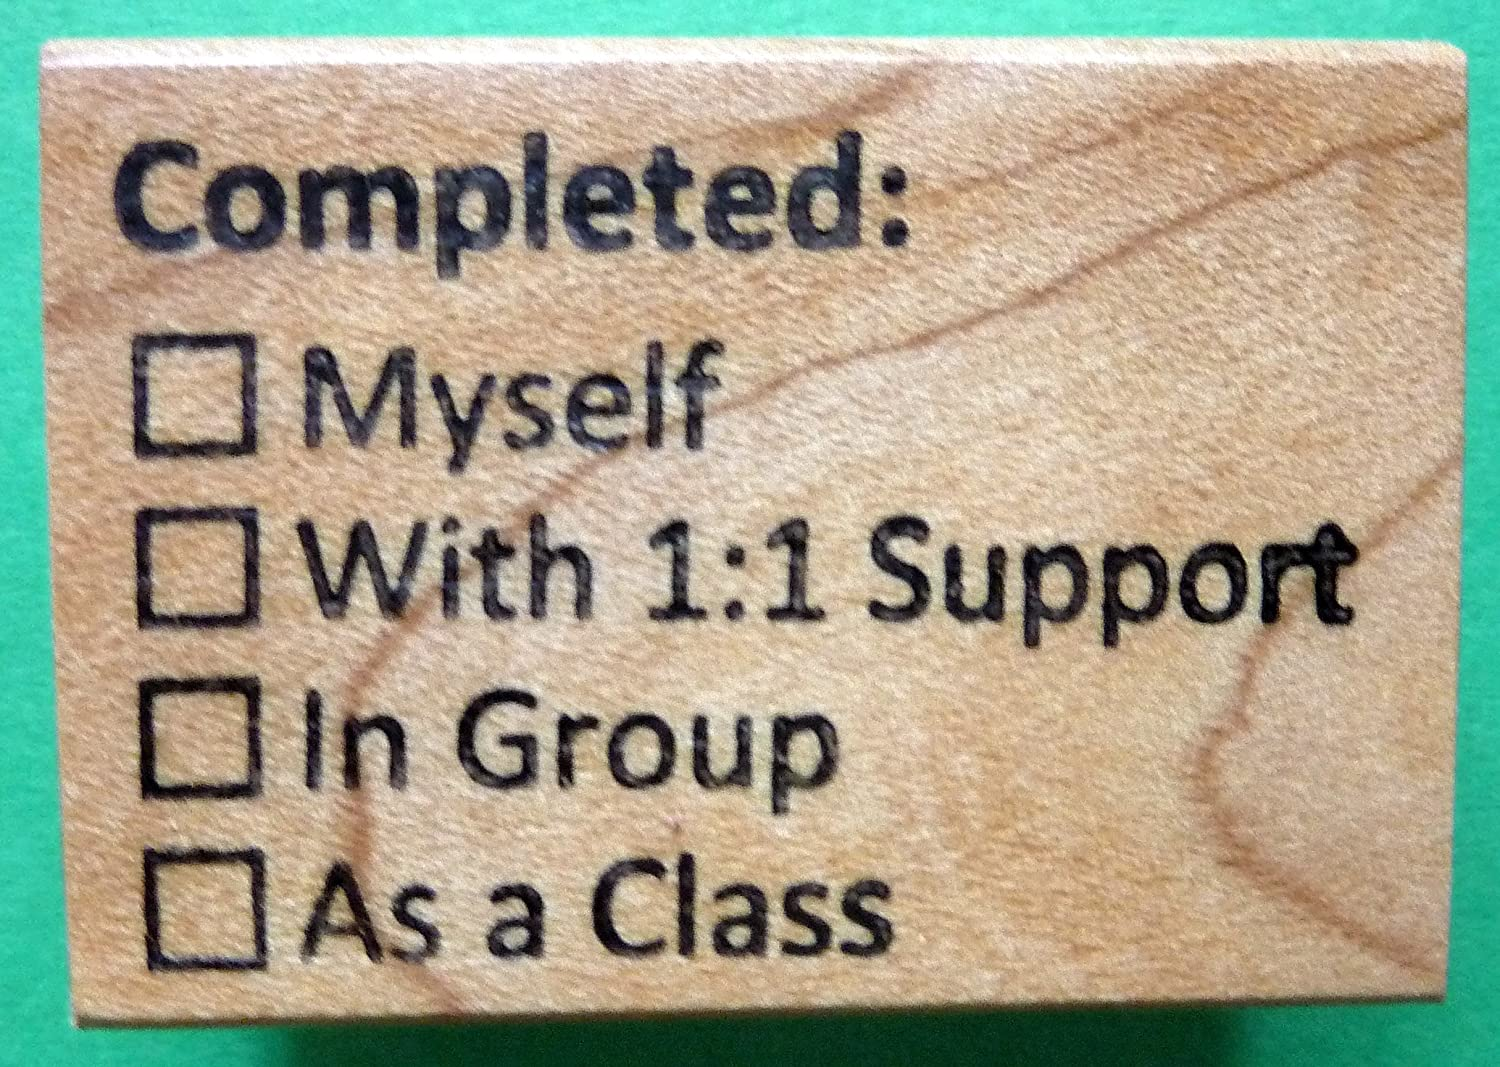 Completed: Teachers Rubber Stamp